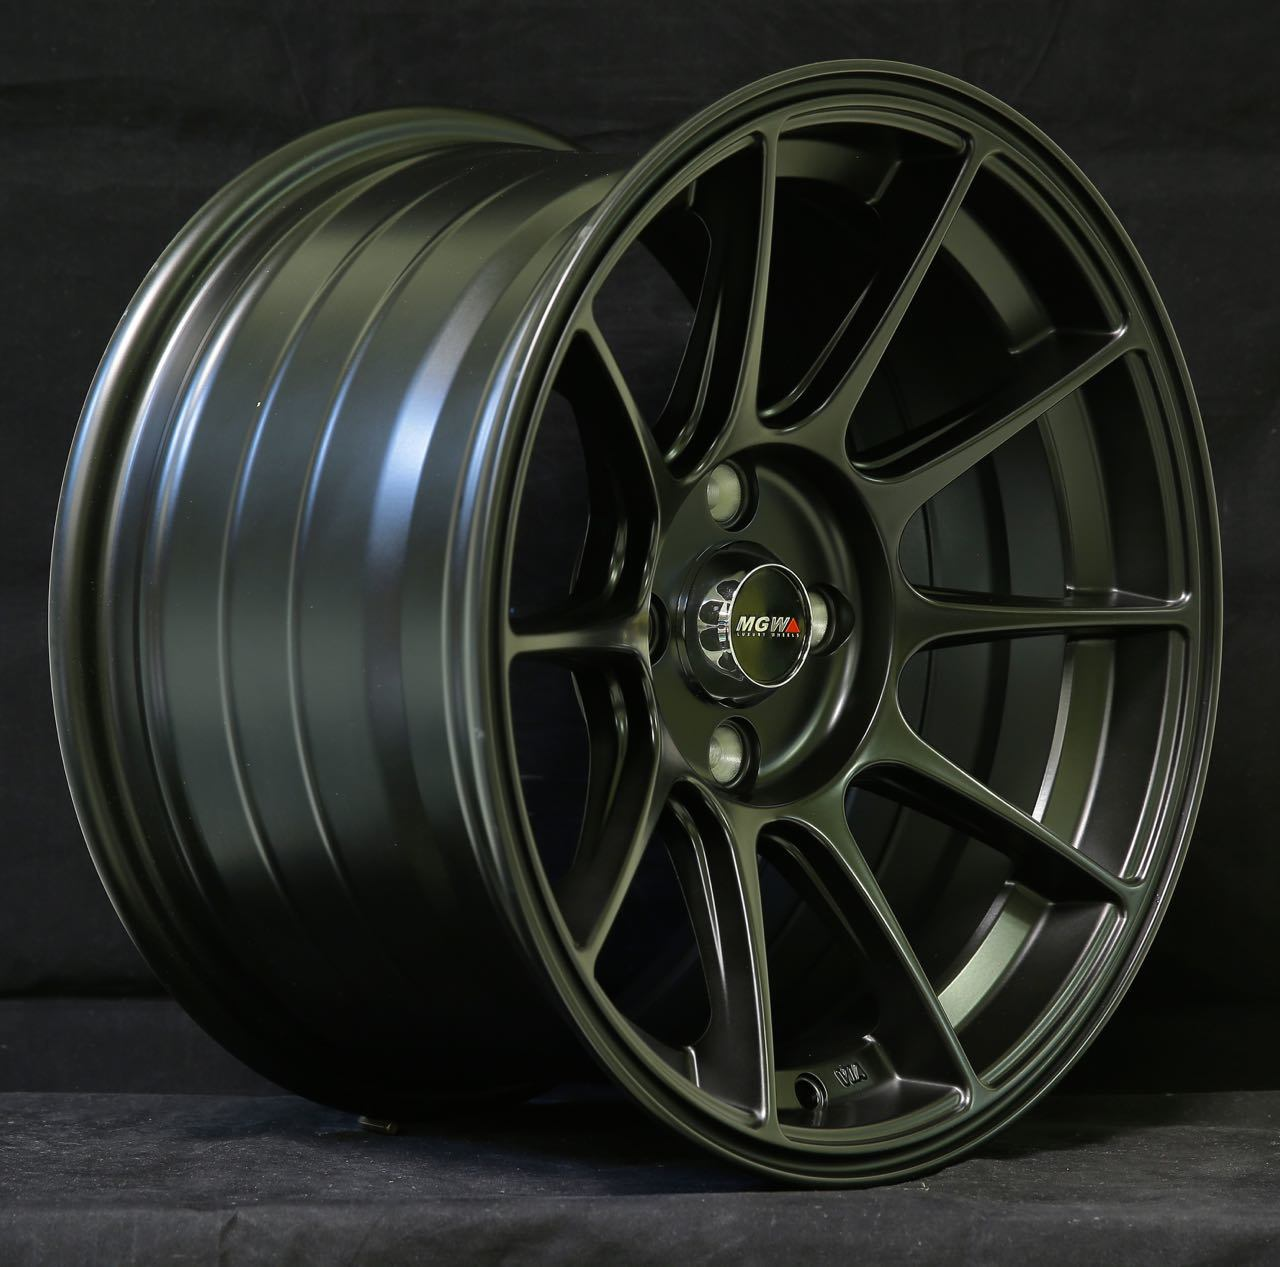 Customize Your Own Car >> China 15 Inch Alloy Wheel Aluminum Rim 4X100 4X114.3 Wheel ...